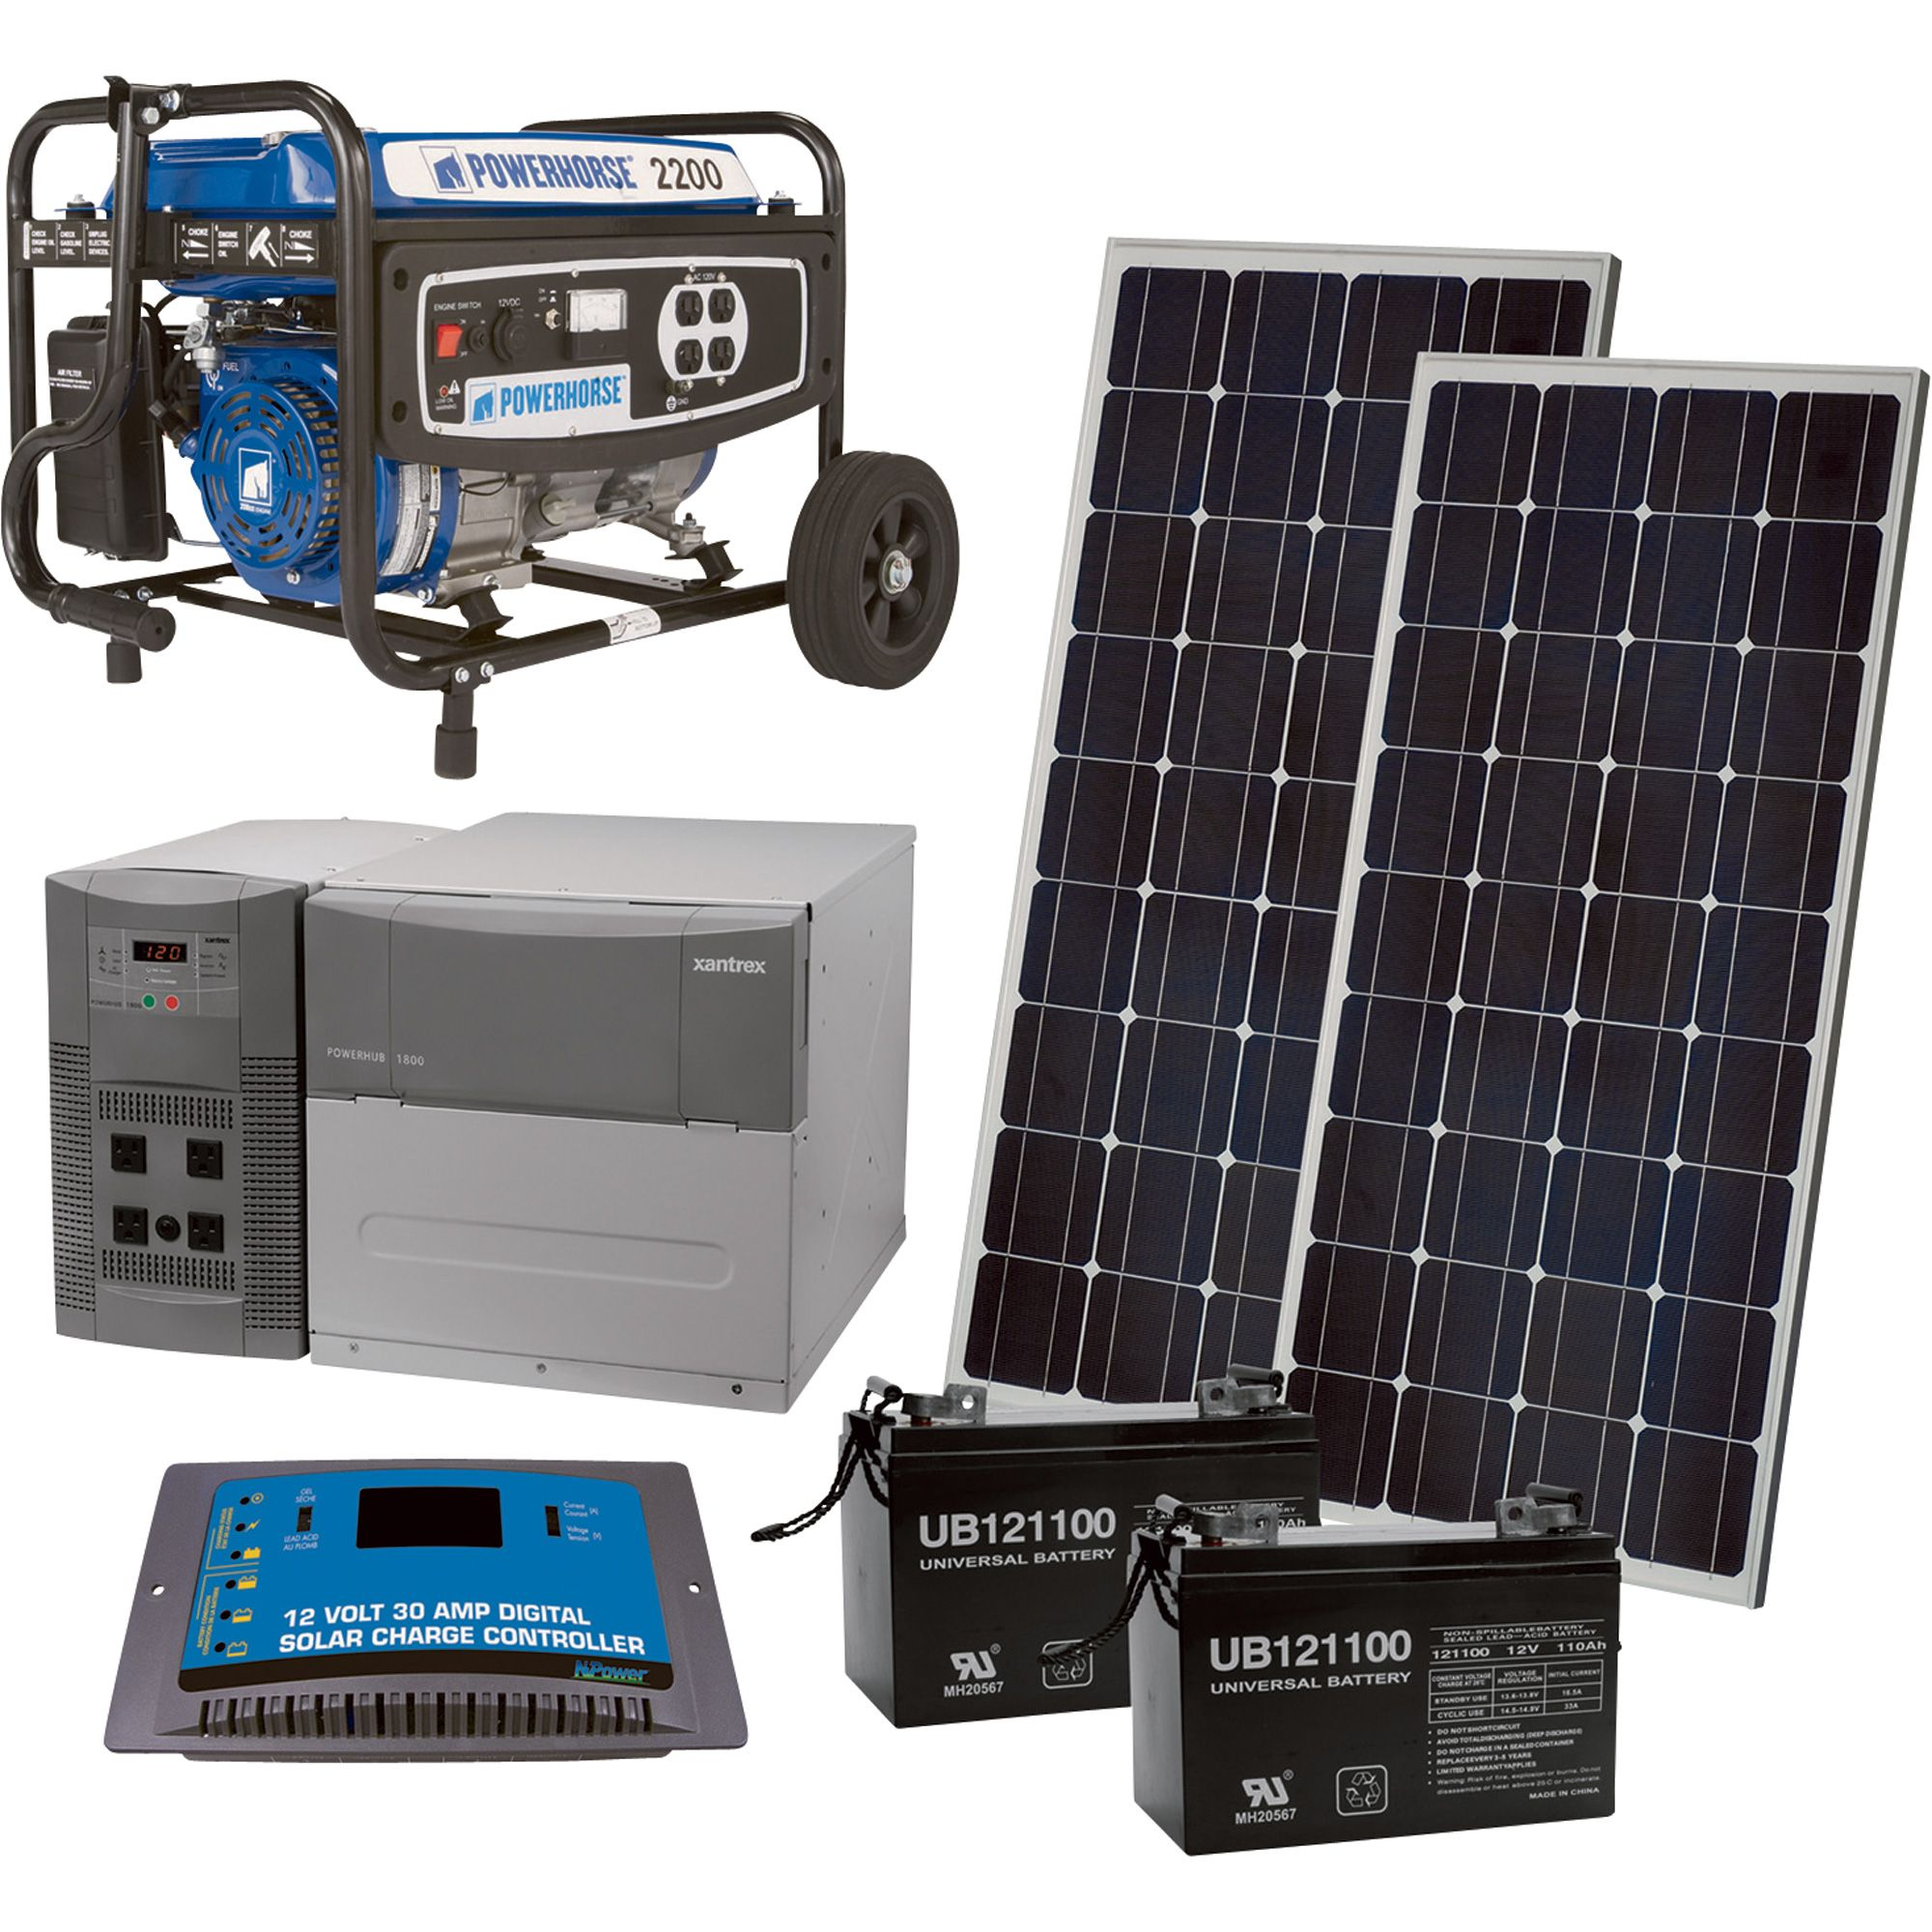 NPower™ Complete Solar Power Package with Backup Generator — 1800 Watts in Bypass Mode + 2200 Additional Generator Watts | Solar Wind Systems| Northern Tool + Equipment